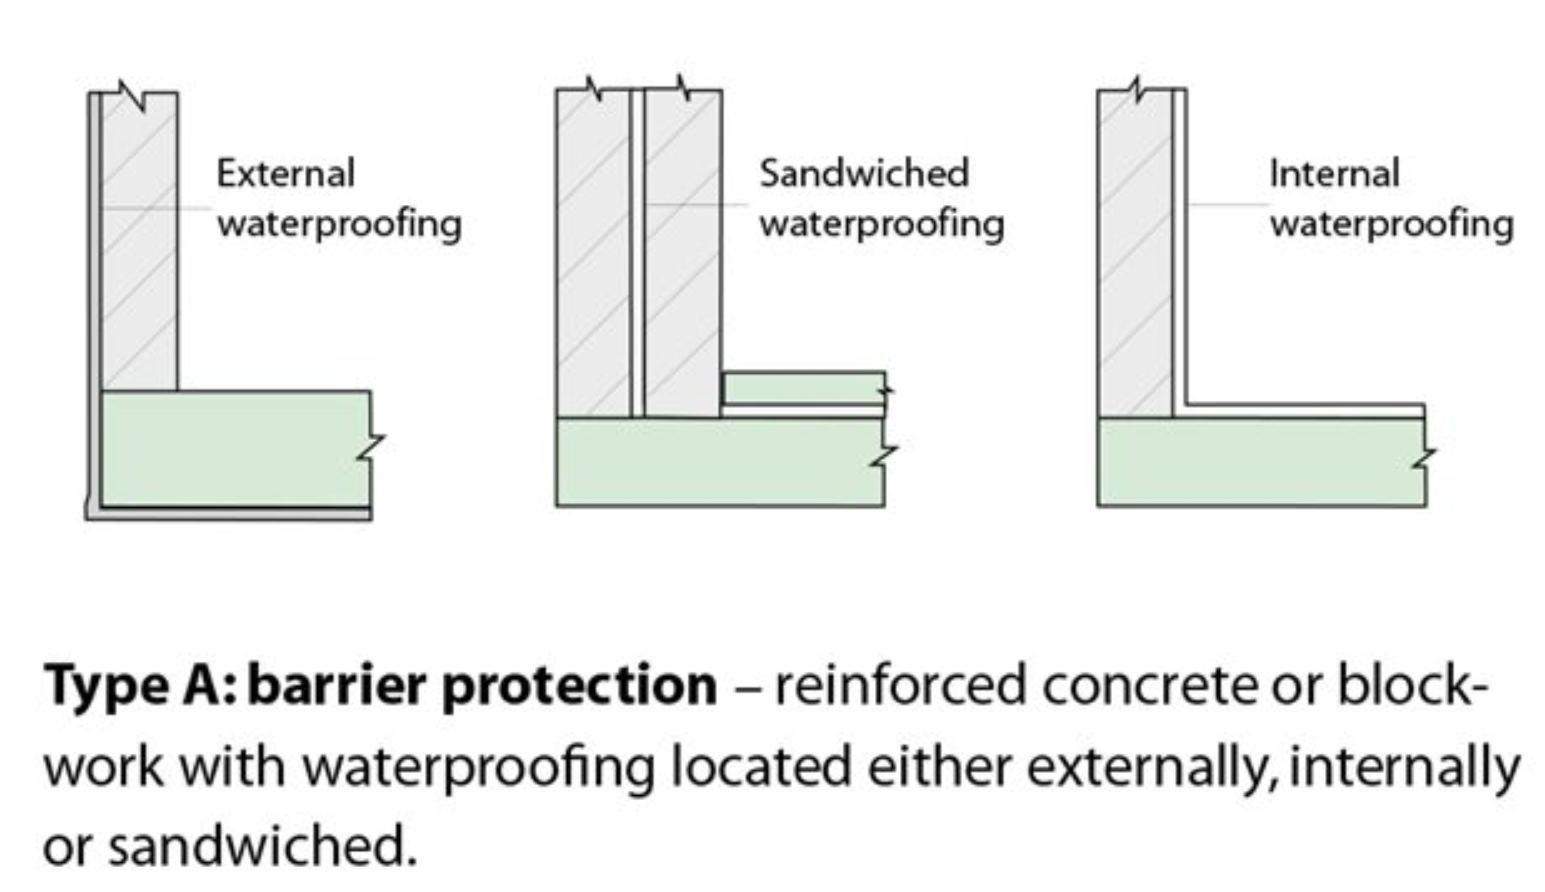 Type A: Barrier Protection